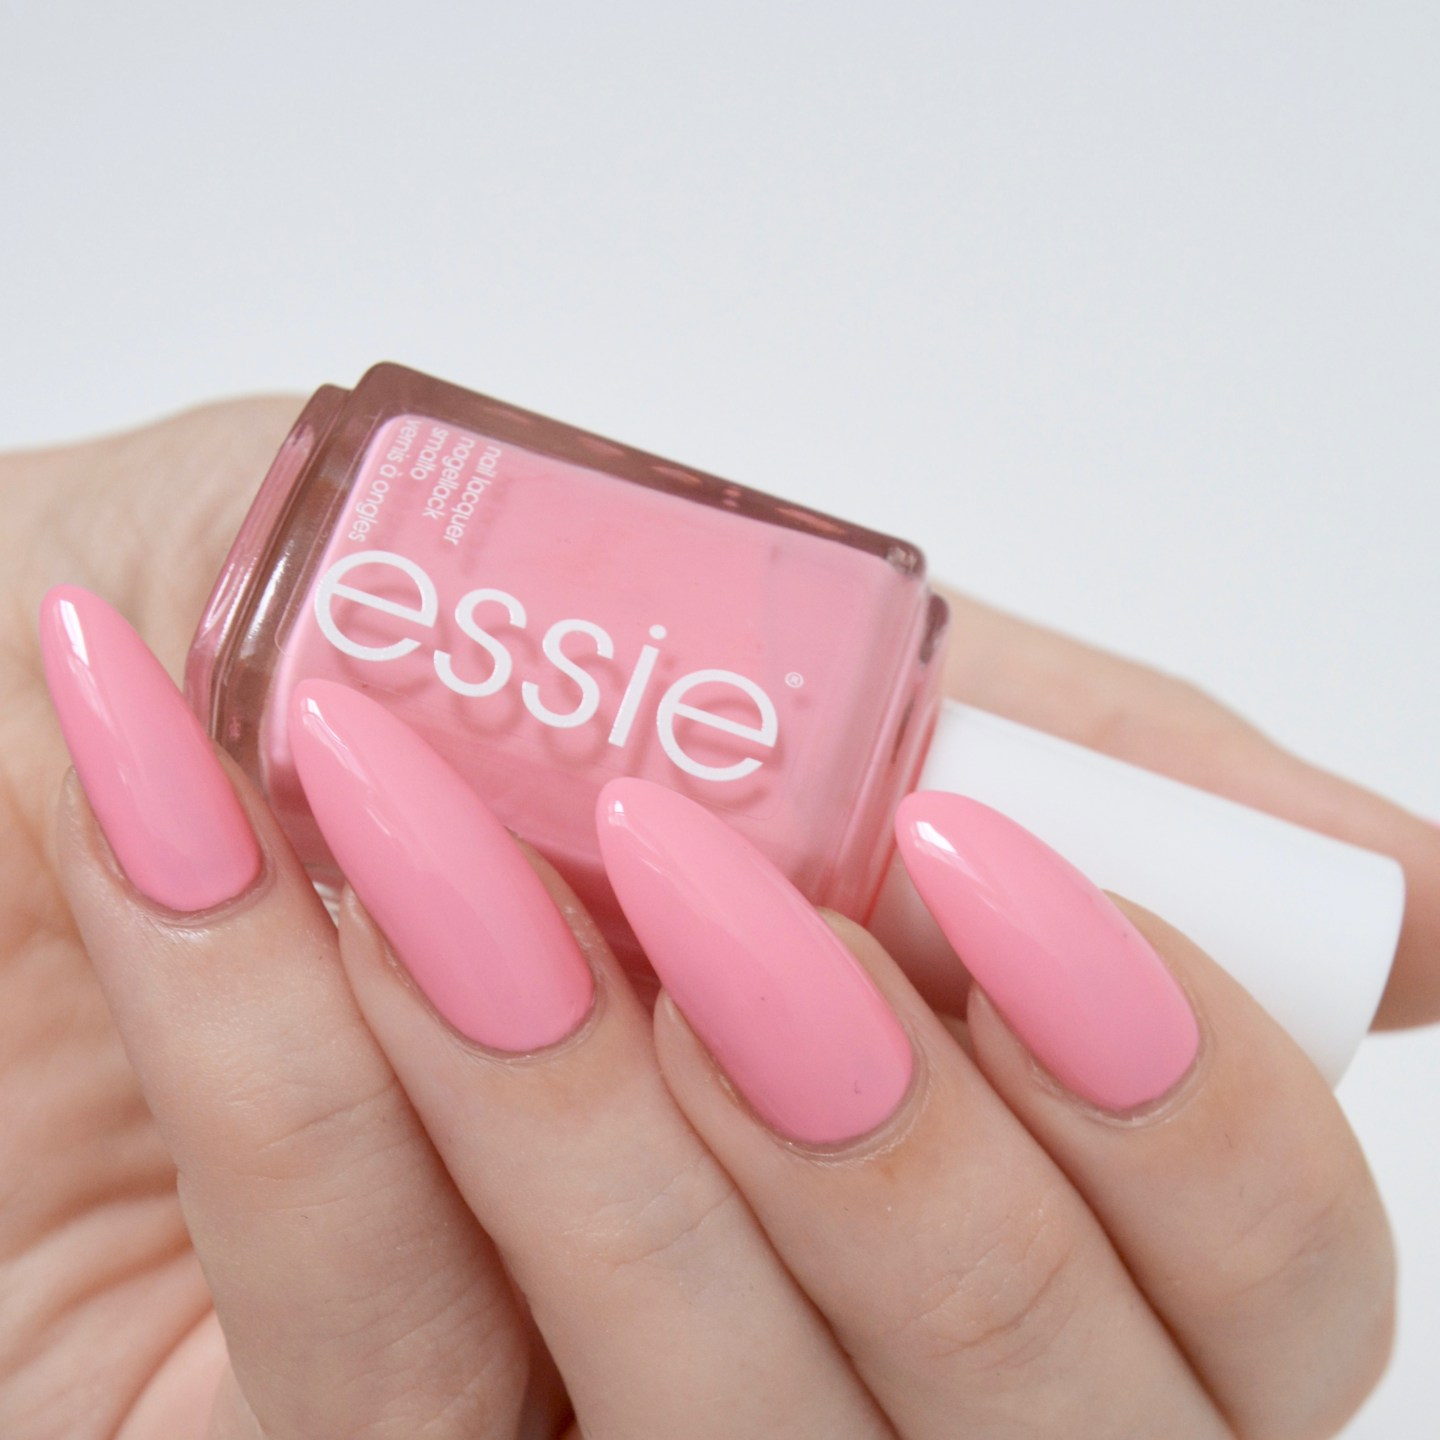 essie Spring 2017 'Backseat Bestie'